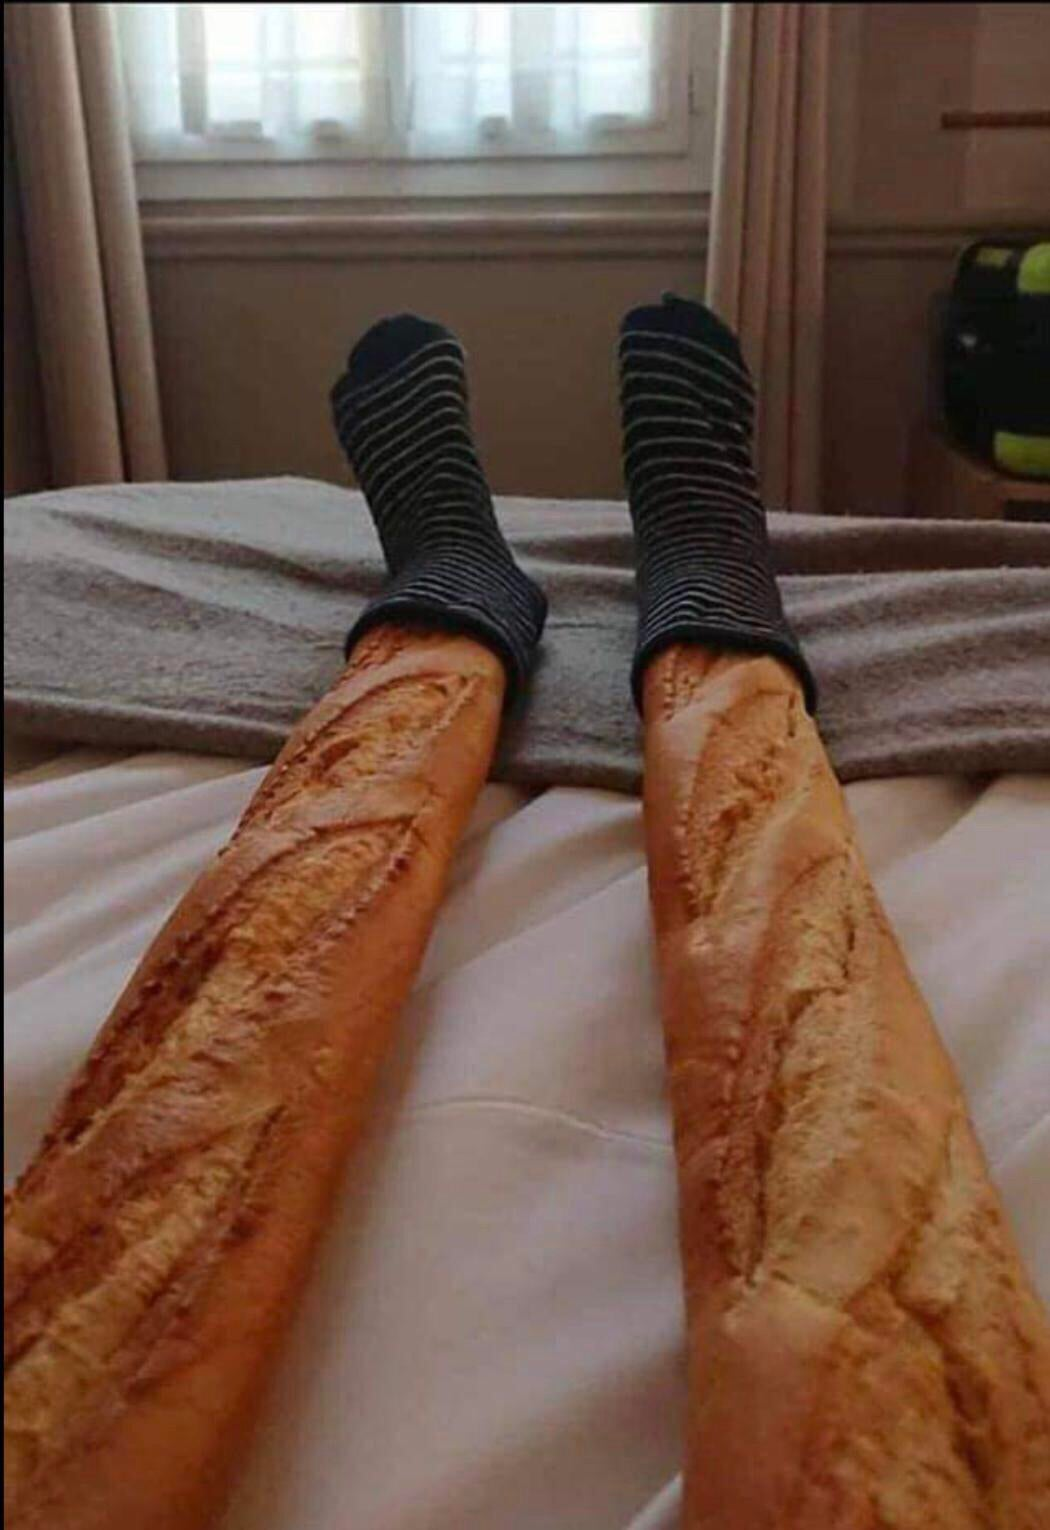 French soldier recovering in hospital after severe burns in both legs, 1943, colorized